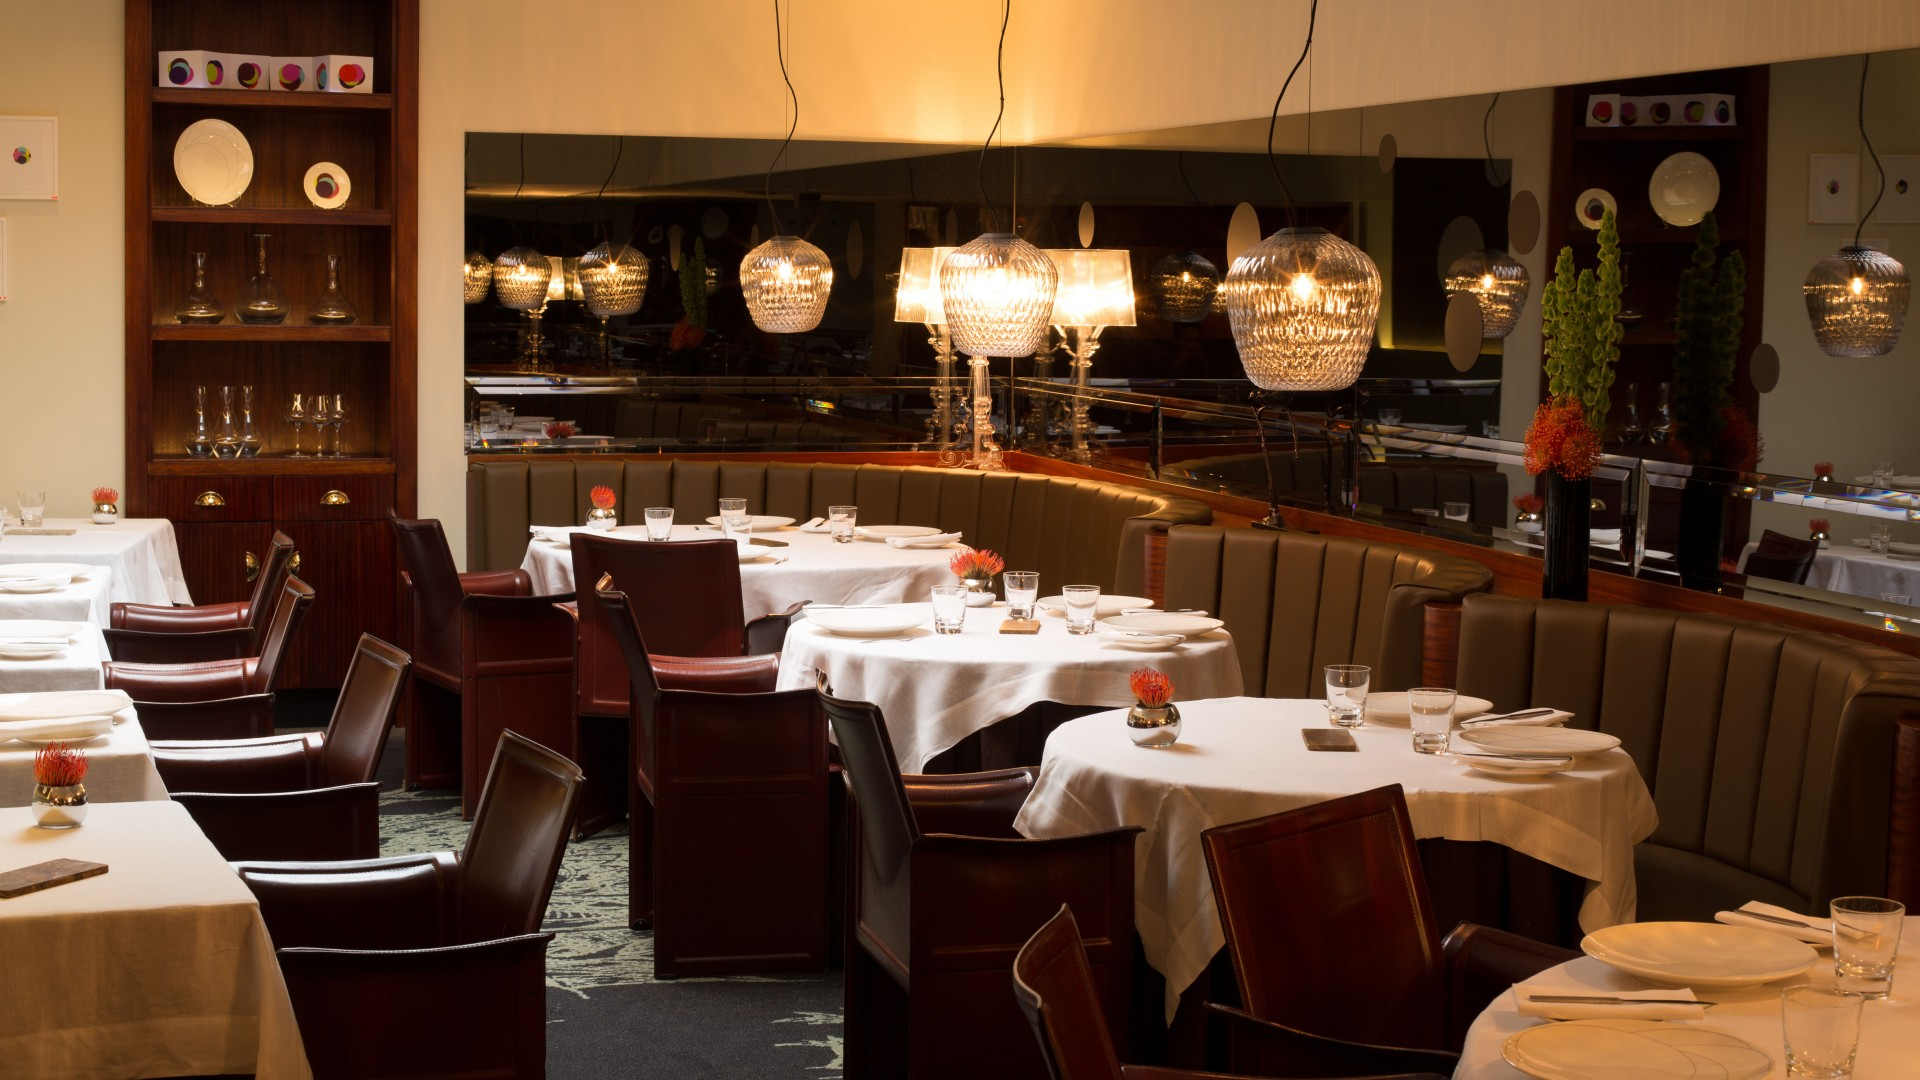 The dining room at Pied à Terre in Fitzrovia